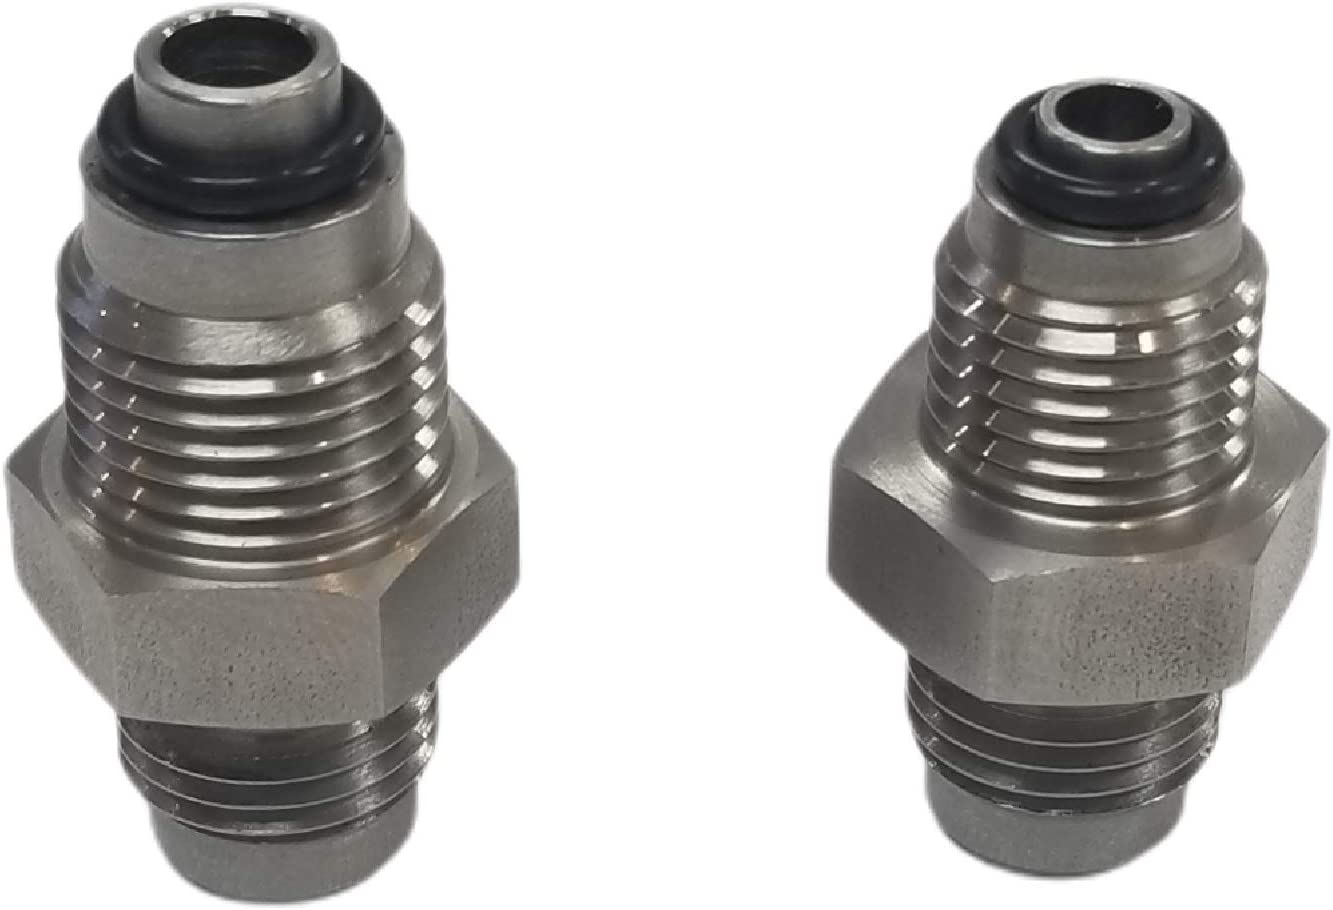 Stainless Steel GM TBI TPI -6AN Fuel Line Adapter Fittings 92-97 LT1 96-98 Vortec M14-1.5 M16-1.5 O-ring Gas Hose 37 Degree JIC -6 6 AN AN6 9/16-18 Flare Thread OBS Metric Made In USA